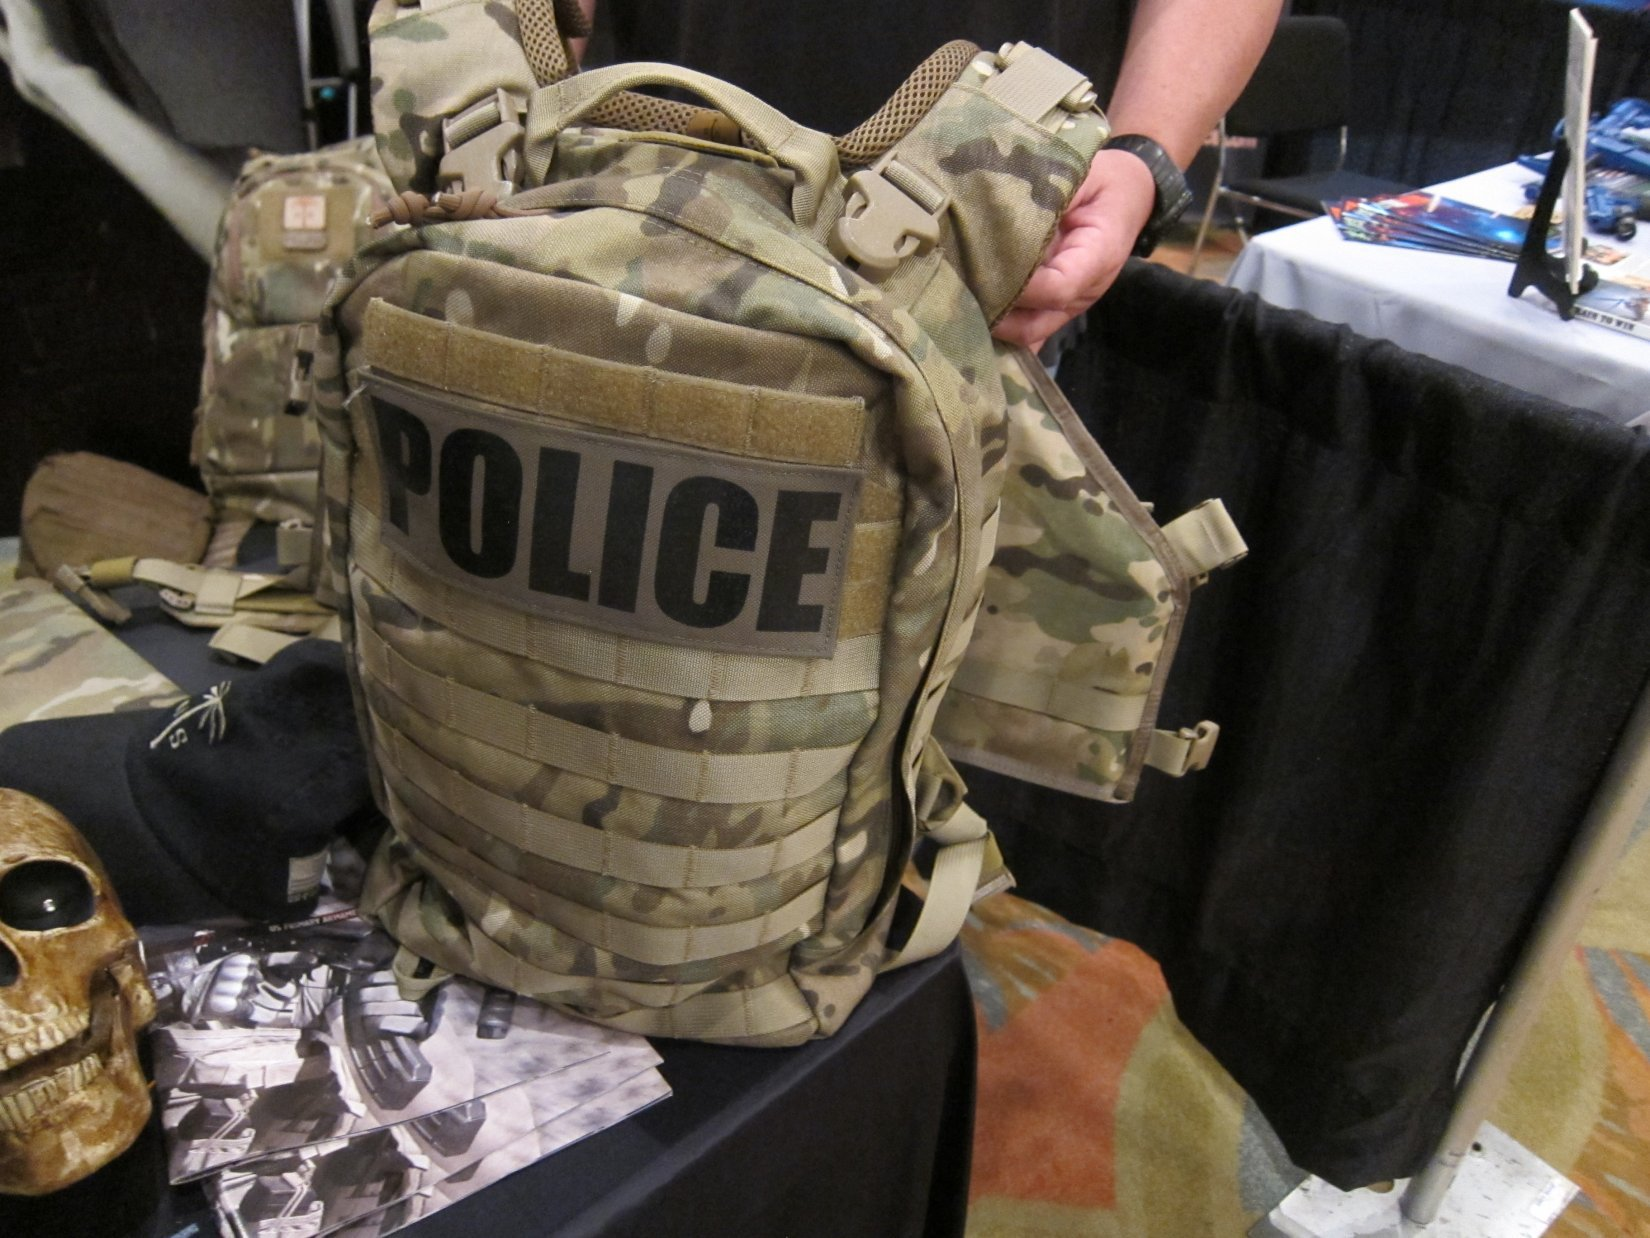 US Palm Draco Hardened Backpack HBP Tactical Pack Multi Platform Attack Rack MPAR Tactical Armor Plate Carrier Body Armor with Horse Collar System HALO Counterterrorism Summit 2012 DefenseReview.com DR 2 US Palm Draco Hardened Backpack (HBP Tactical Pack)/Multi Platform Attack Rack (MPAR) Tactical Armor Plate Carrier (Body Armor) System with Enhanced Harness System (EHS) Collar: Meet the Agile Combat System (ACS) (Video!)